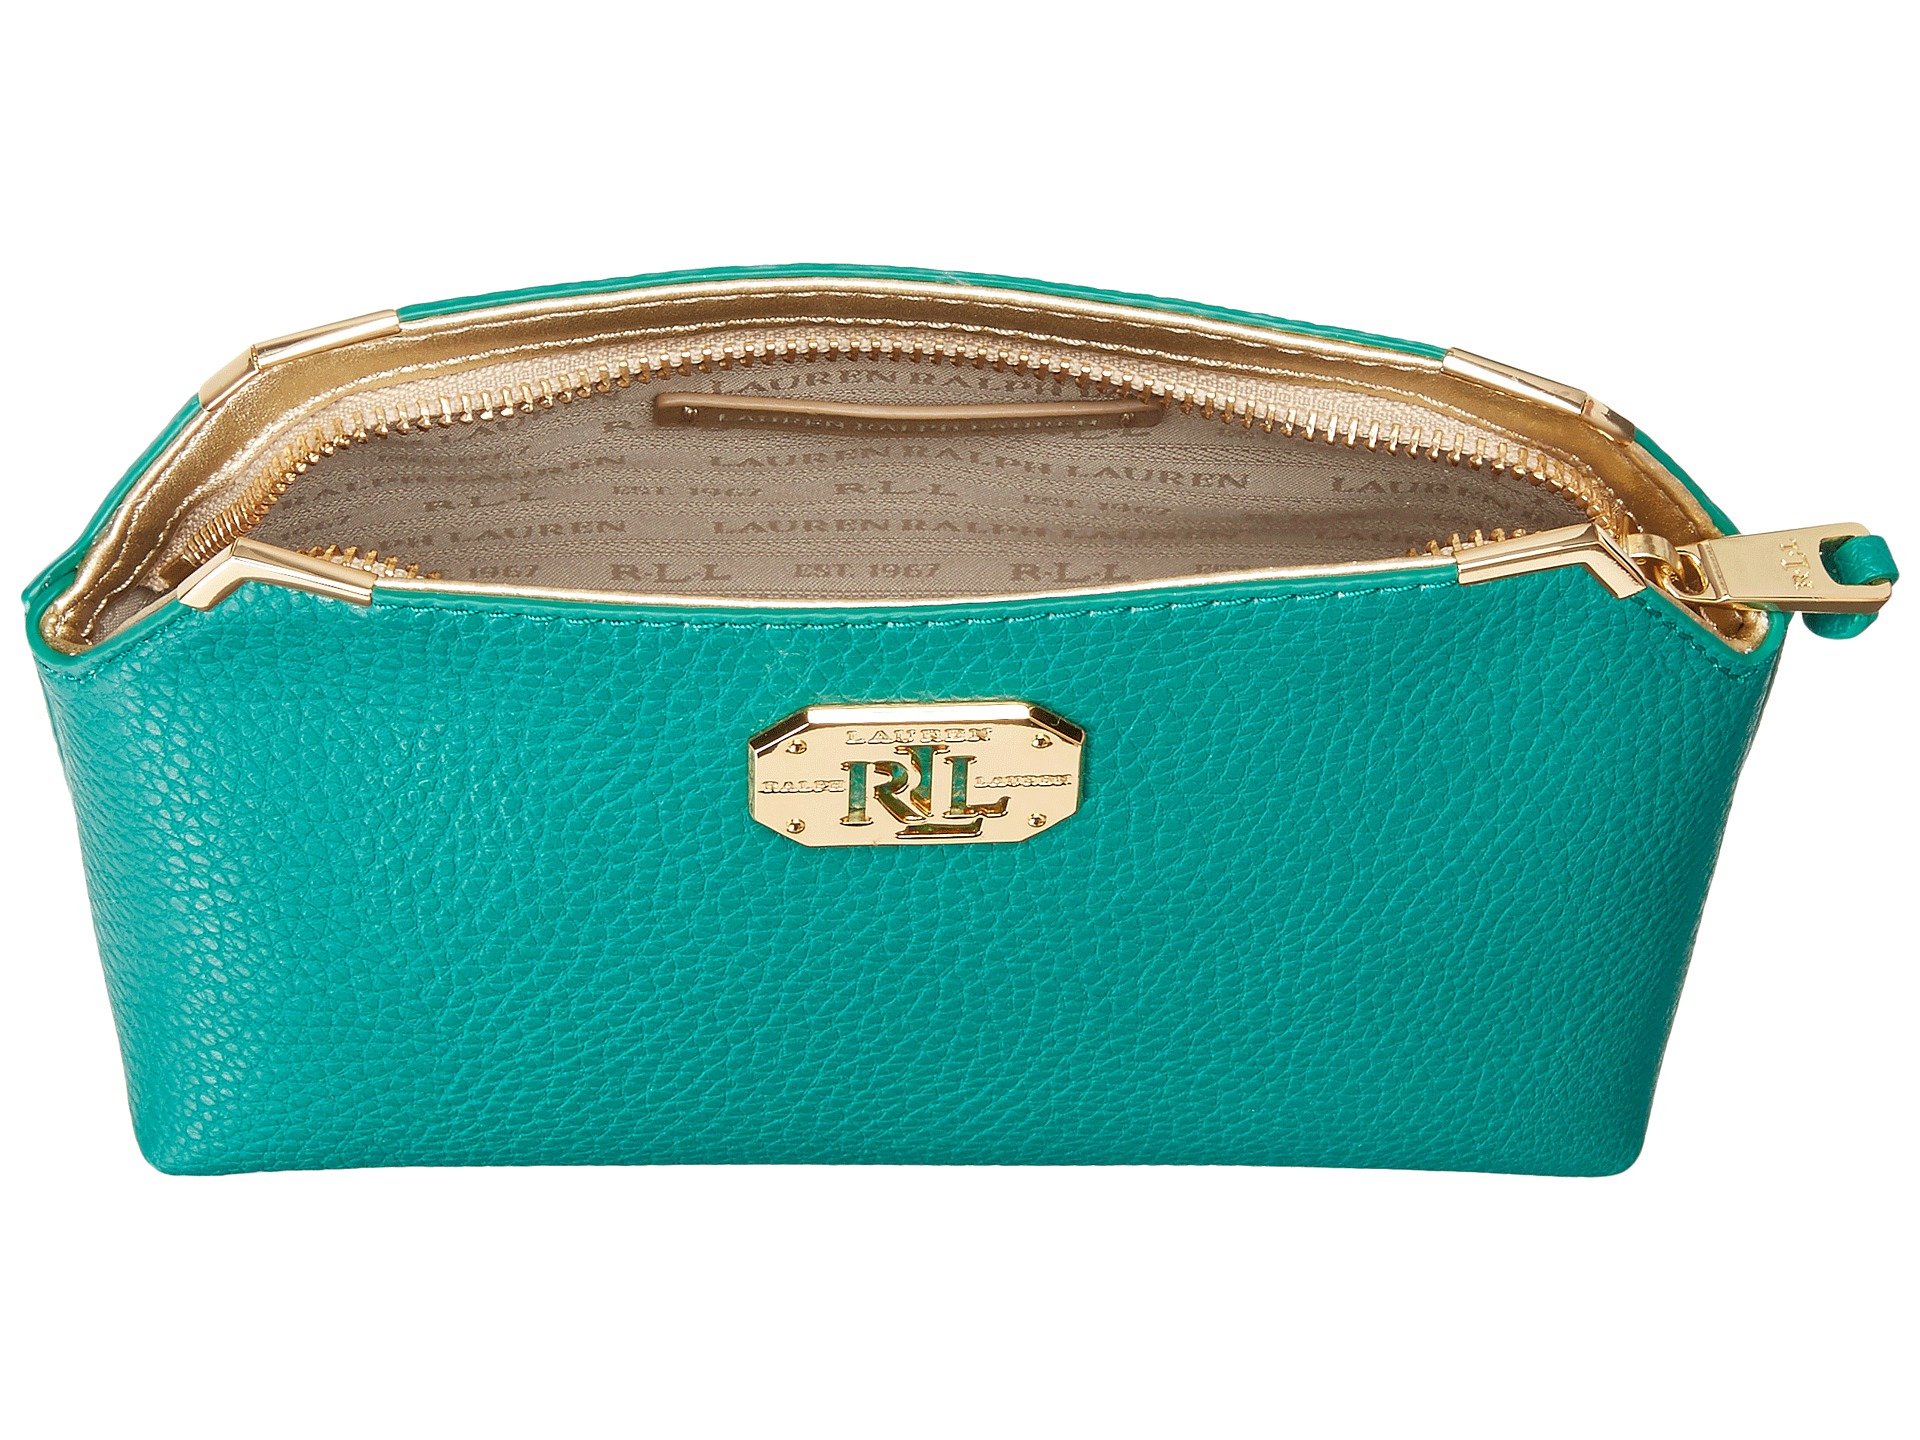 fb50ee77e8ee Lyst - Lauren by Ralph Lauren Acadia New Cosmetic Case in Green